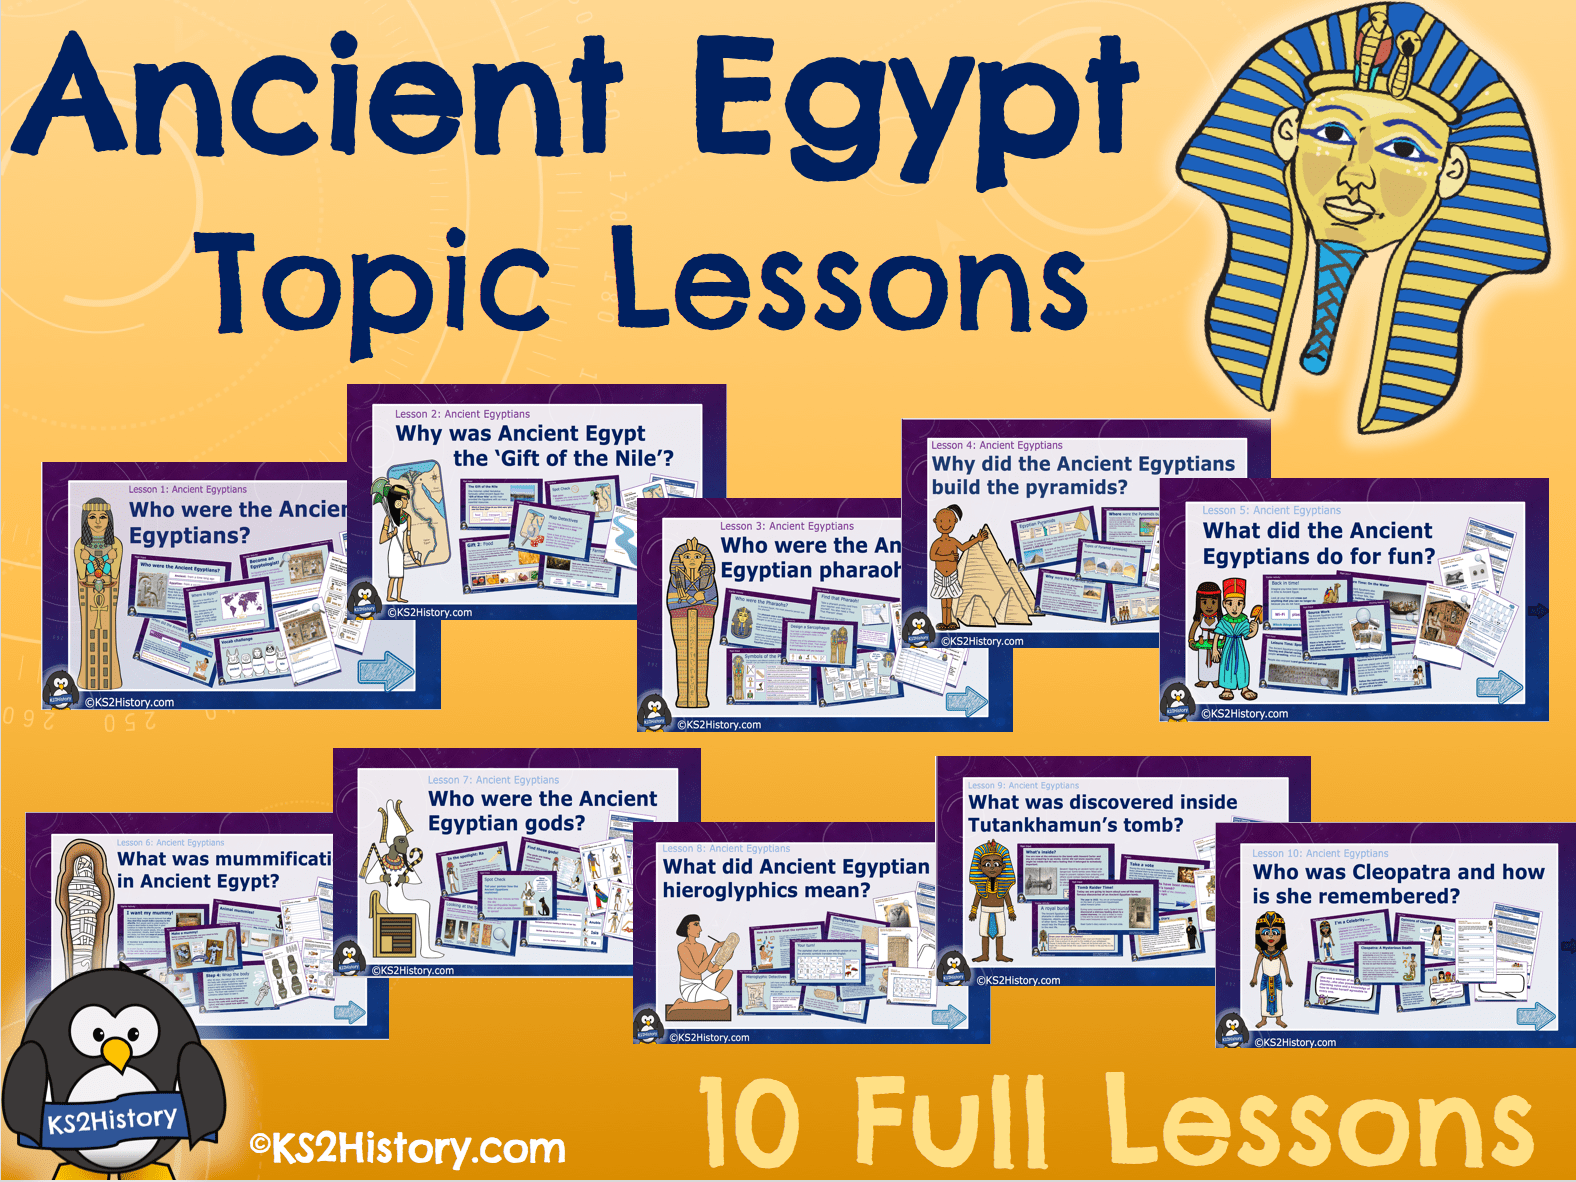 Secondary Egypt Resources